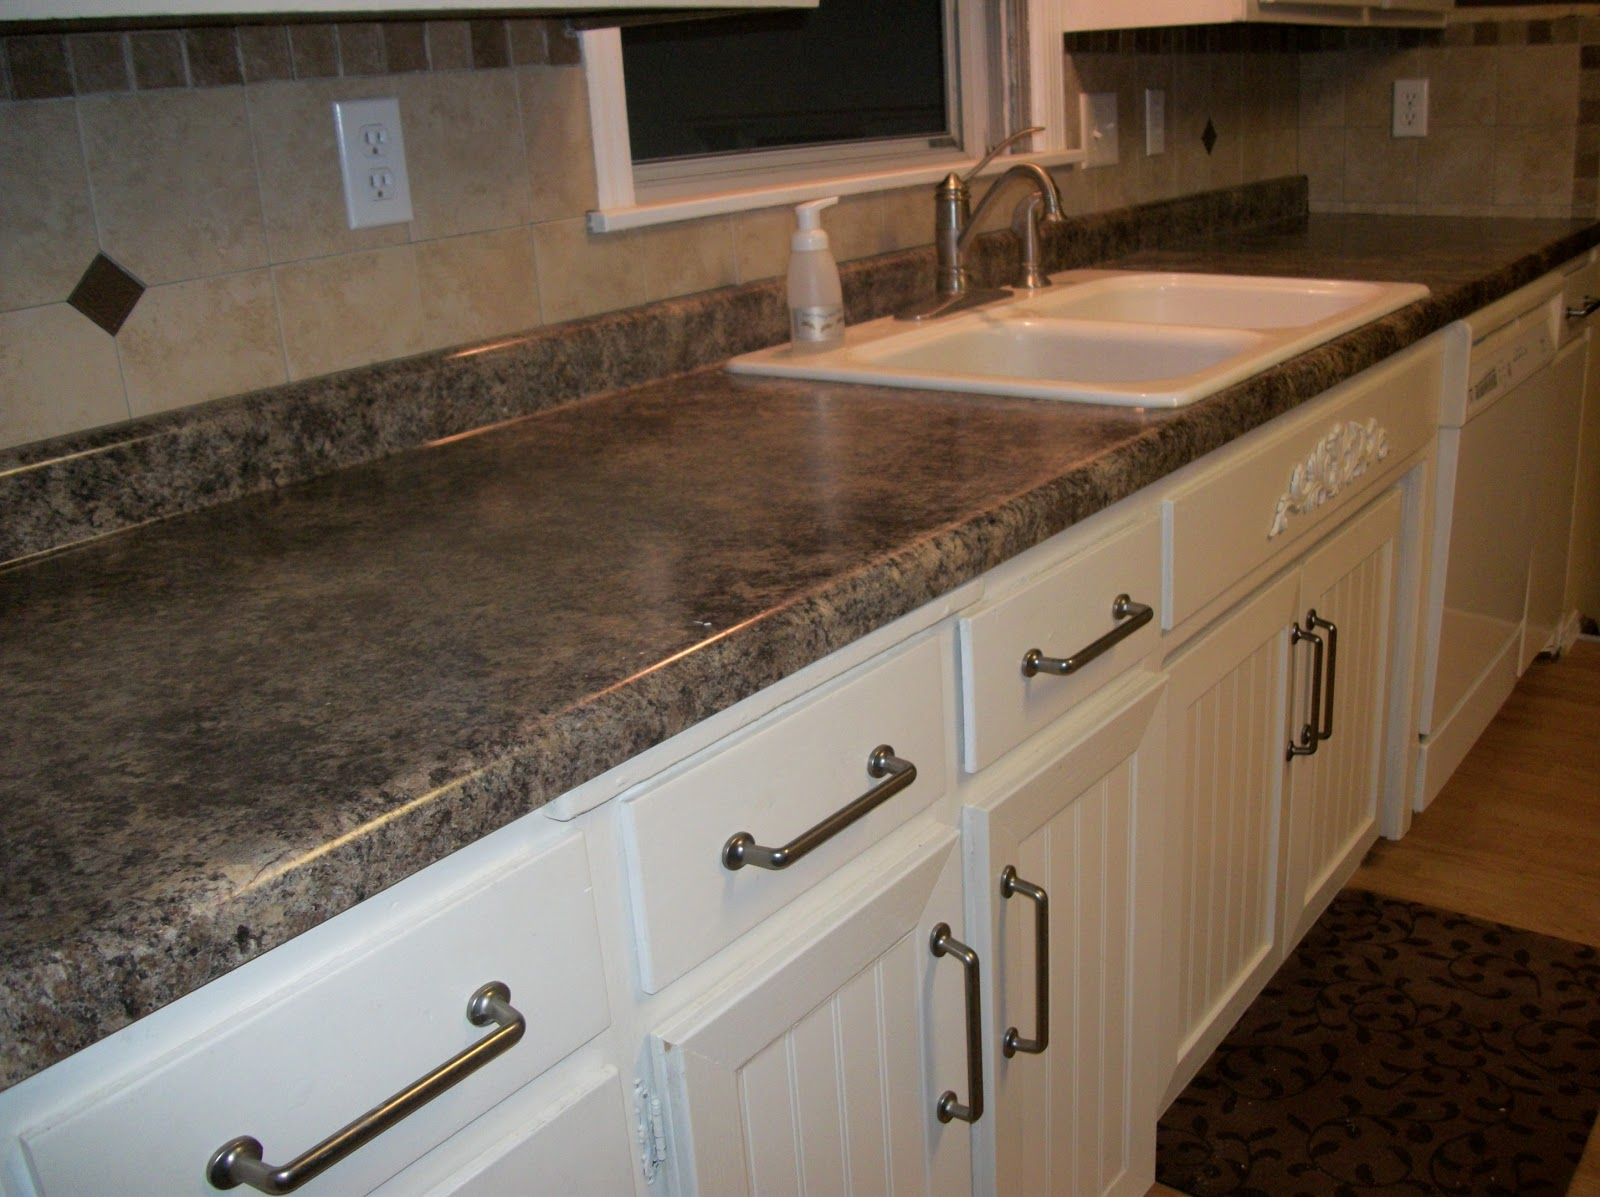 Lowes Refacing Kitchen Cabinets Outdoor Kitchens Las Vegas Cabinet